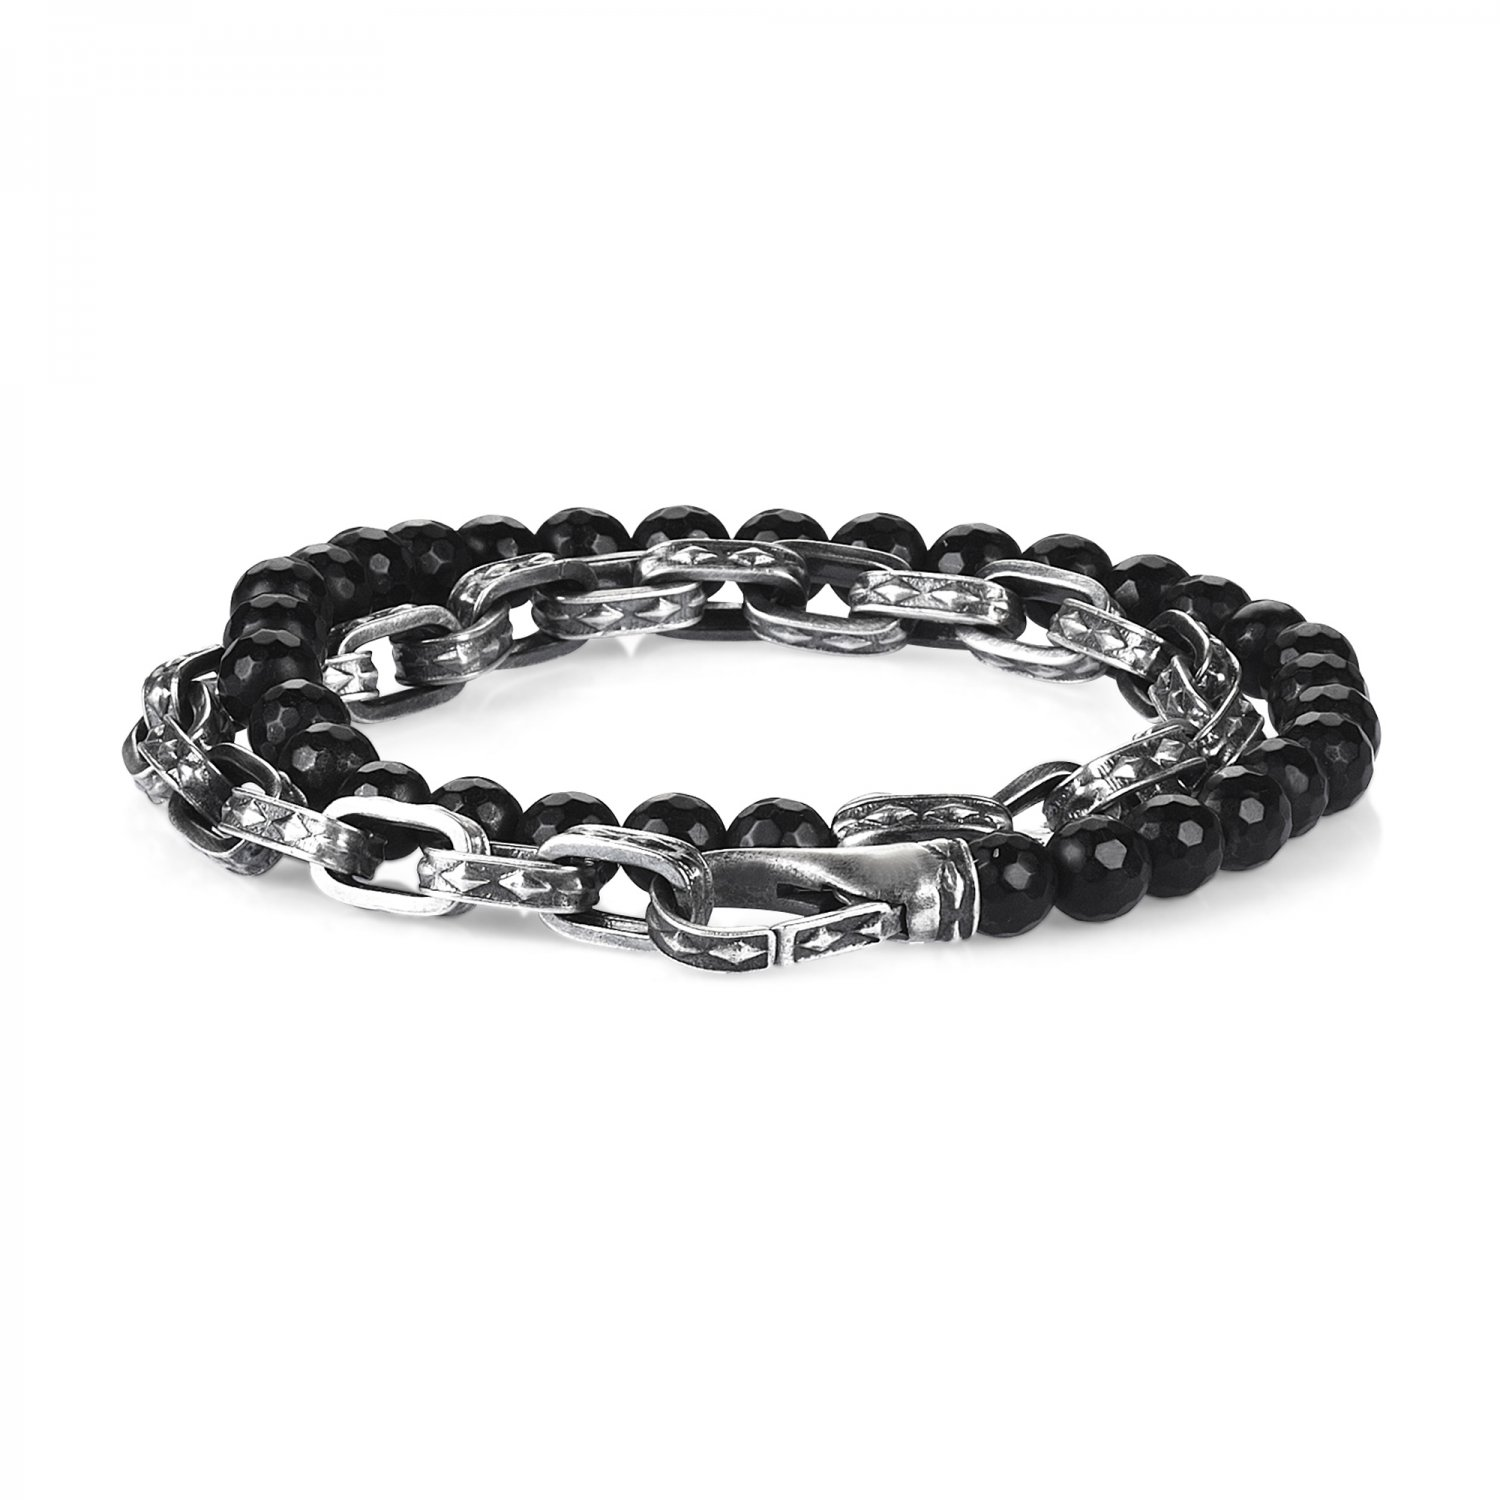 Oxidised Silver Cubic Chain Bracelet w/ Faceted Black Onyx Beads, 6.00mm